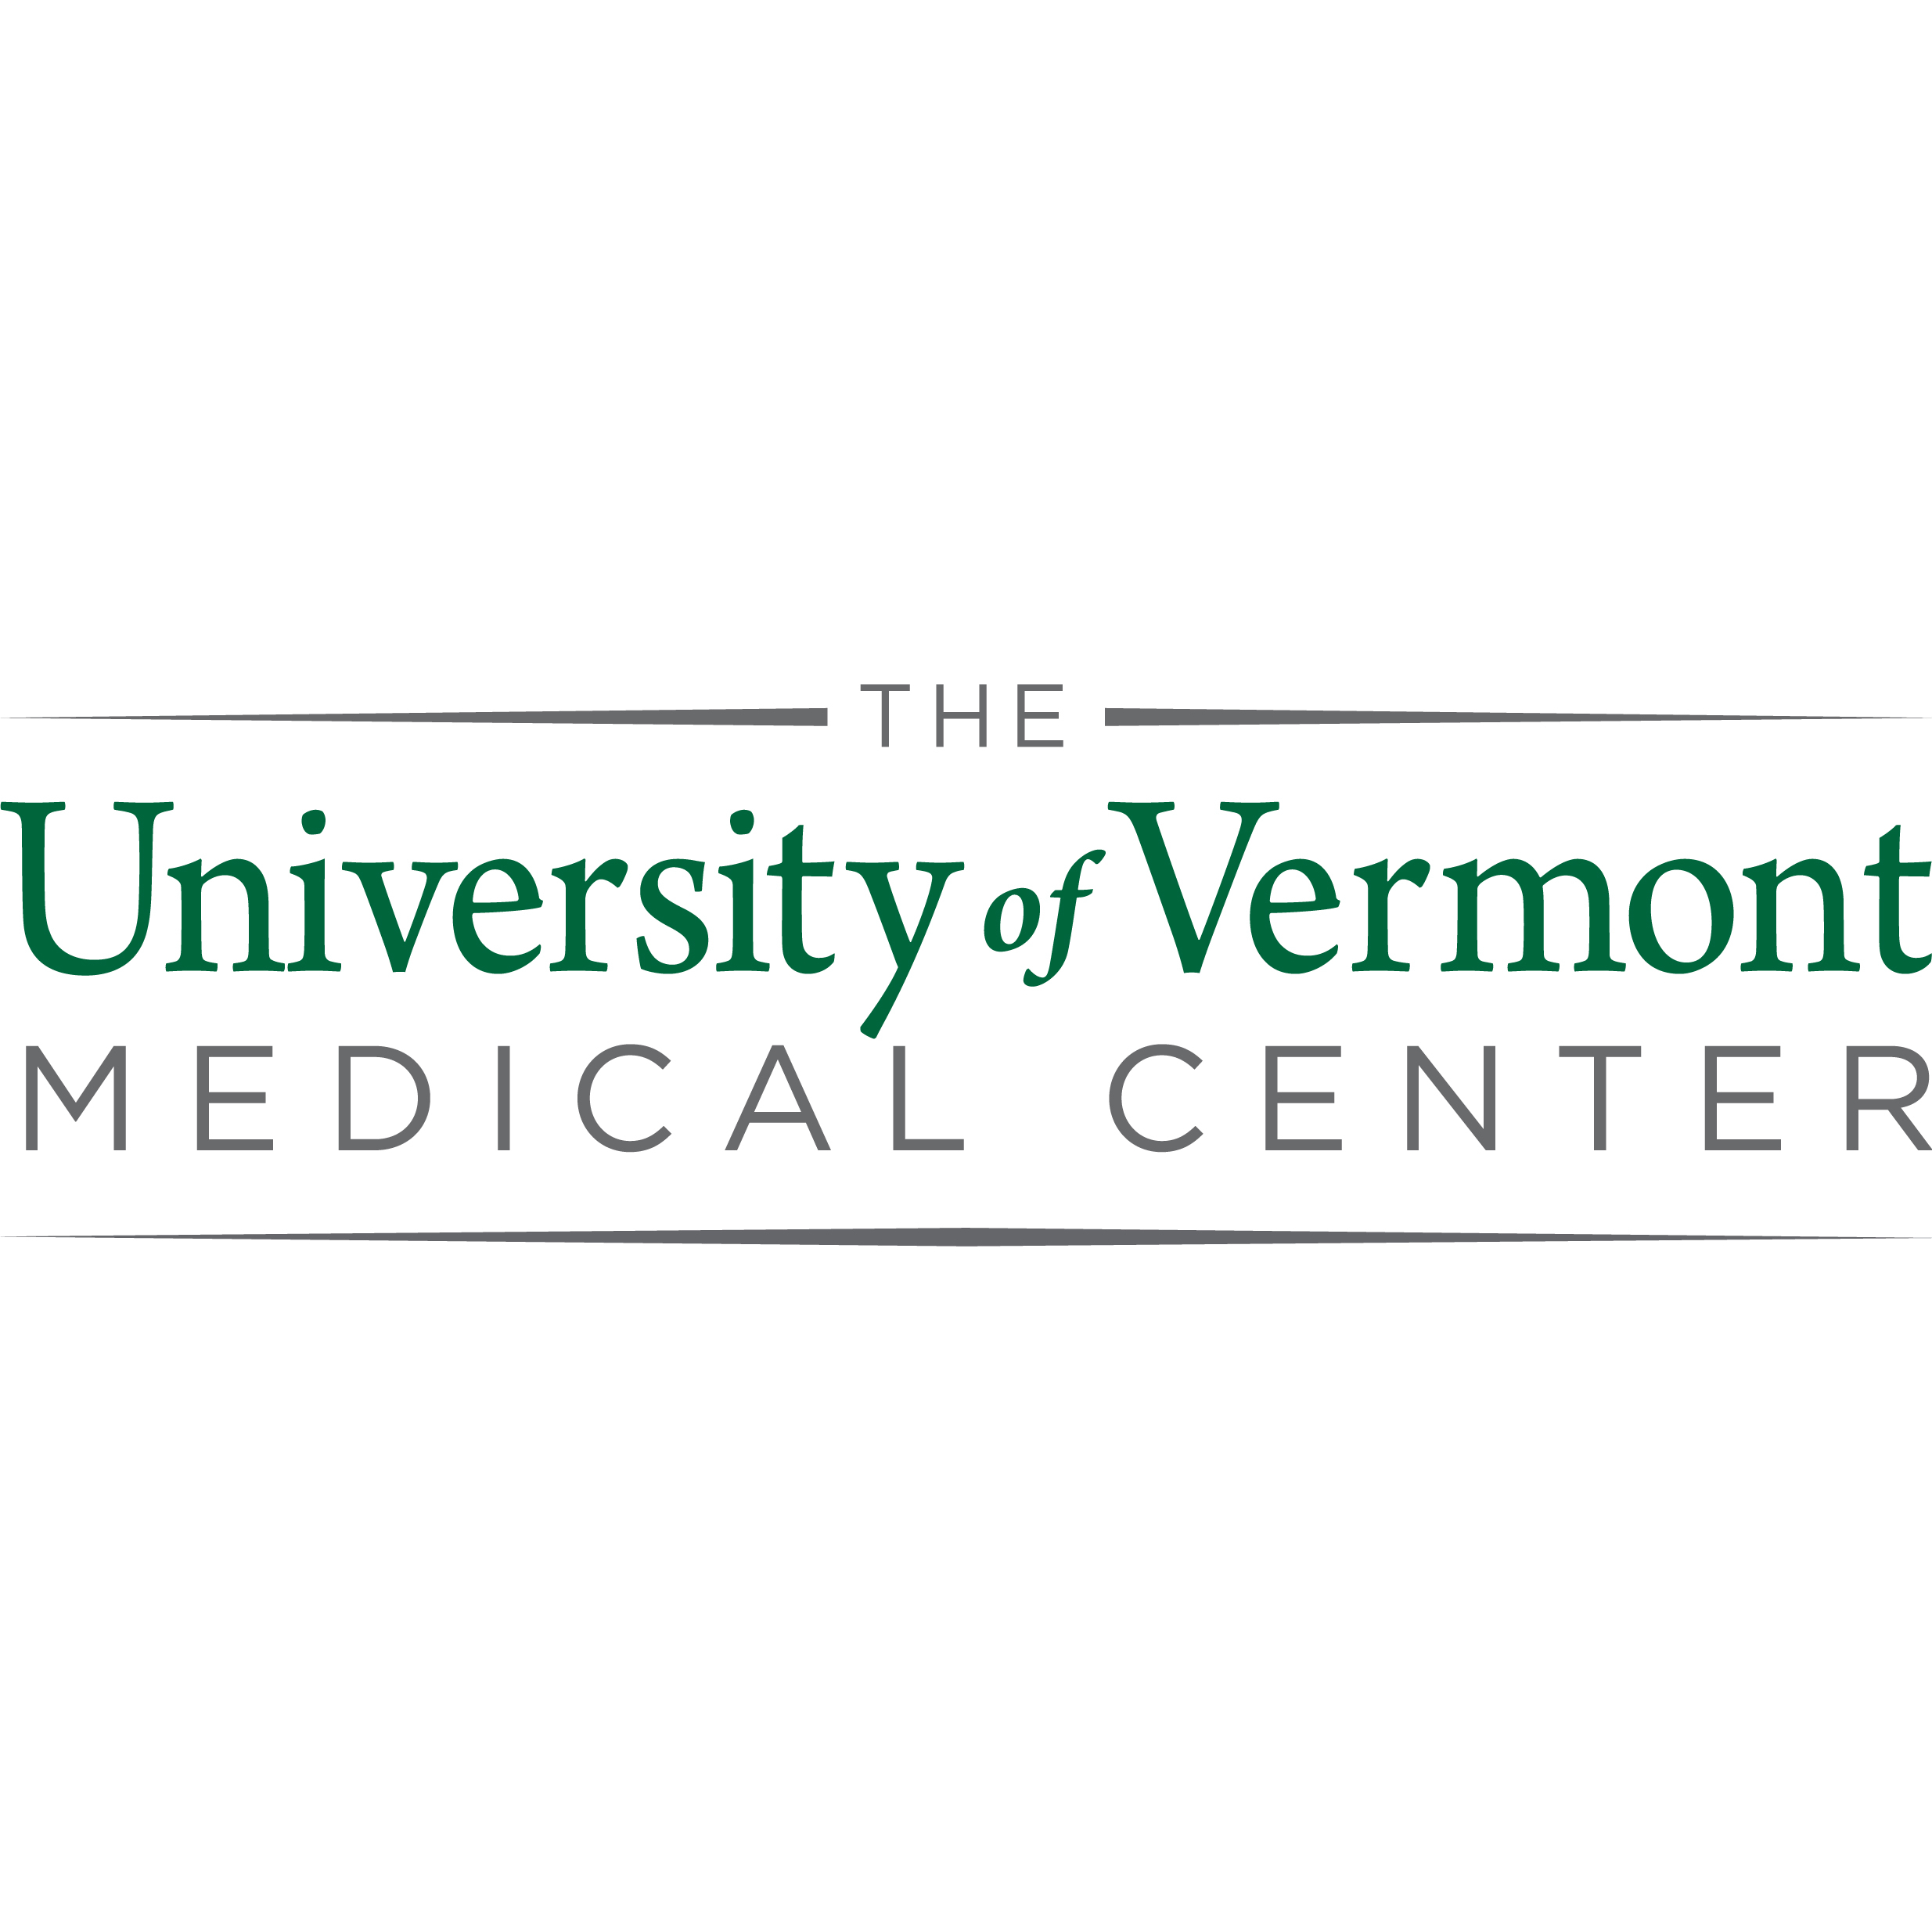 UVM Medical Center Dental and Oral Health image 1